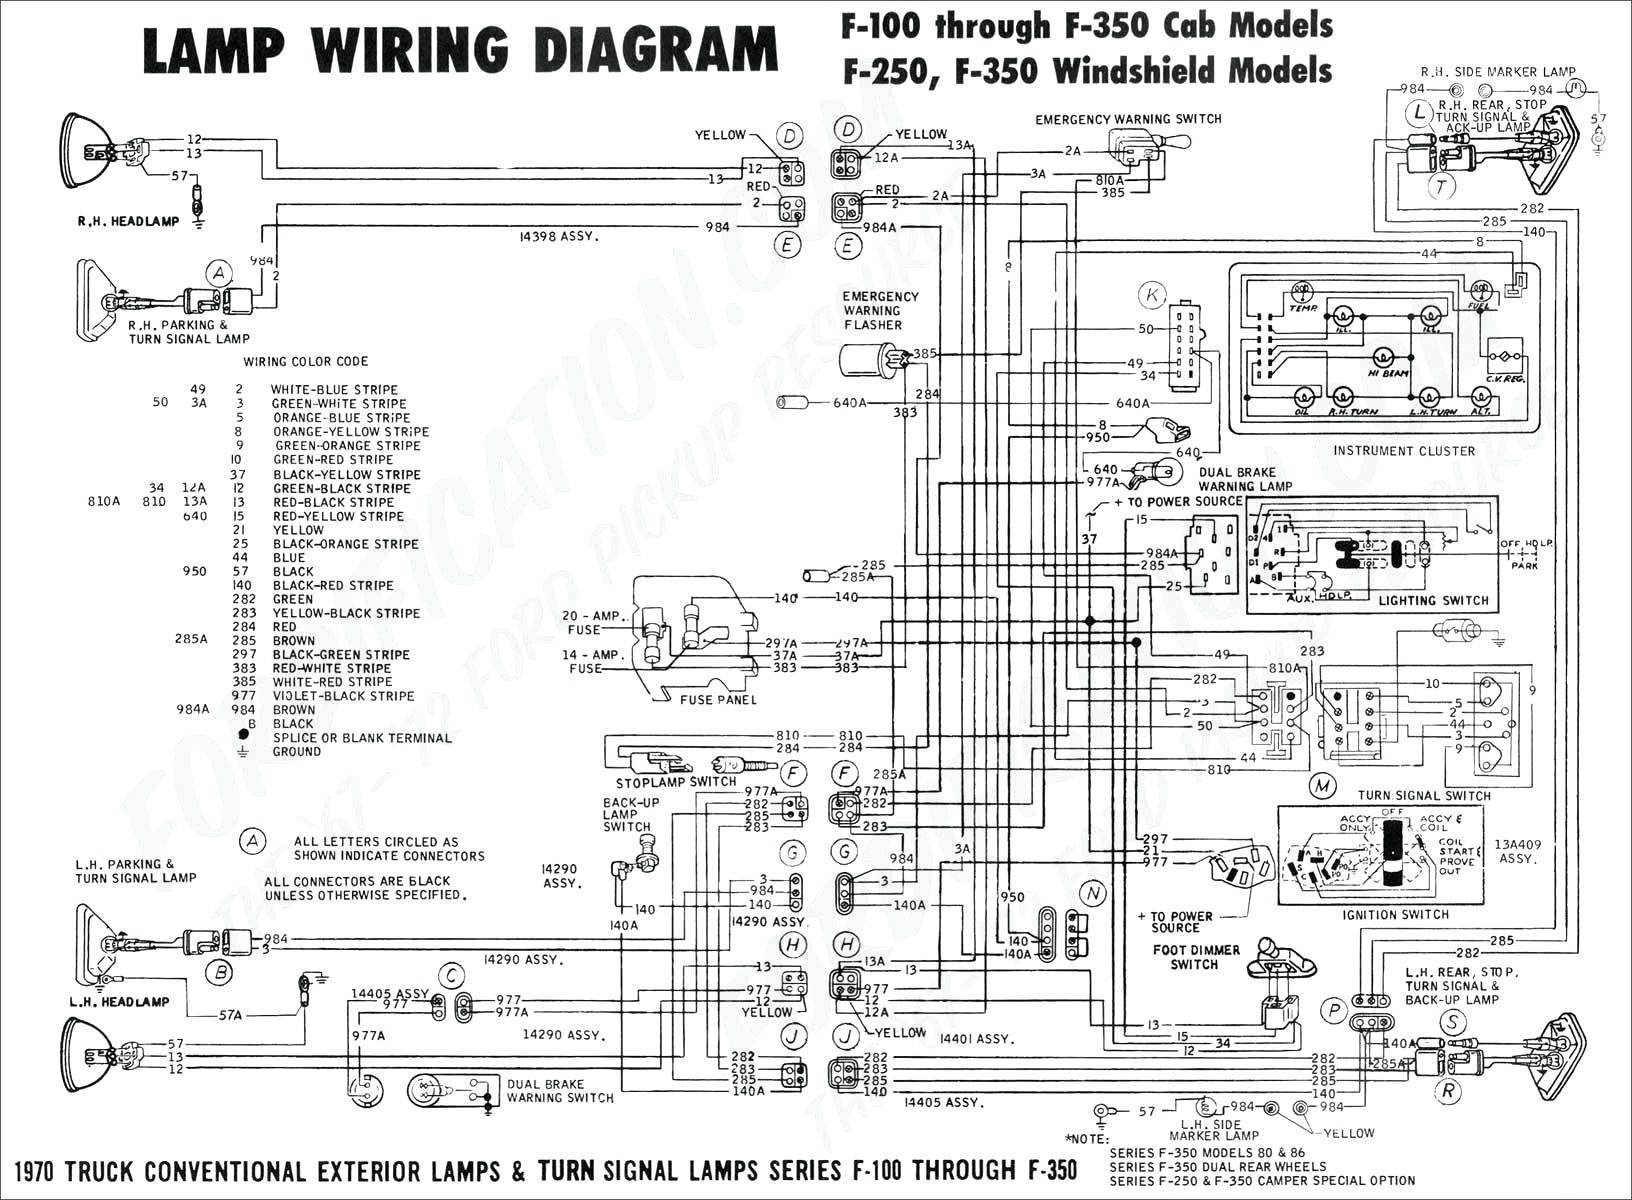 Icm 251 Wiring Diagram | Wiring Diagram Icm Time Delay Wiring Diagram on